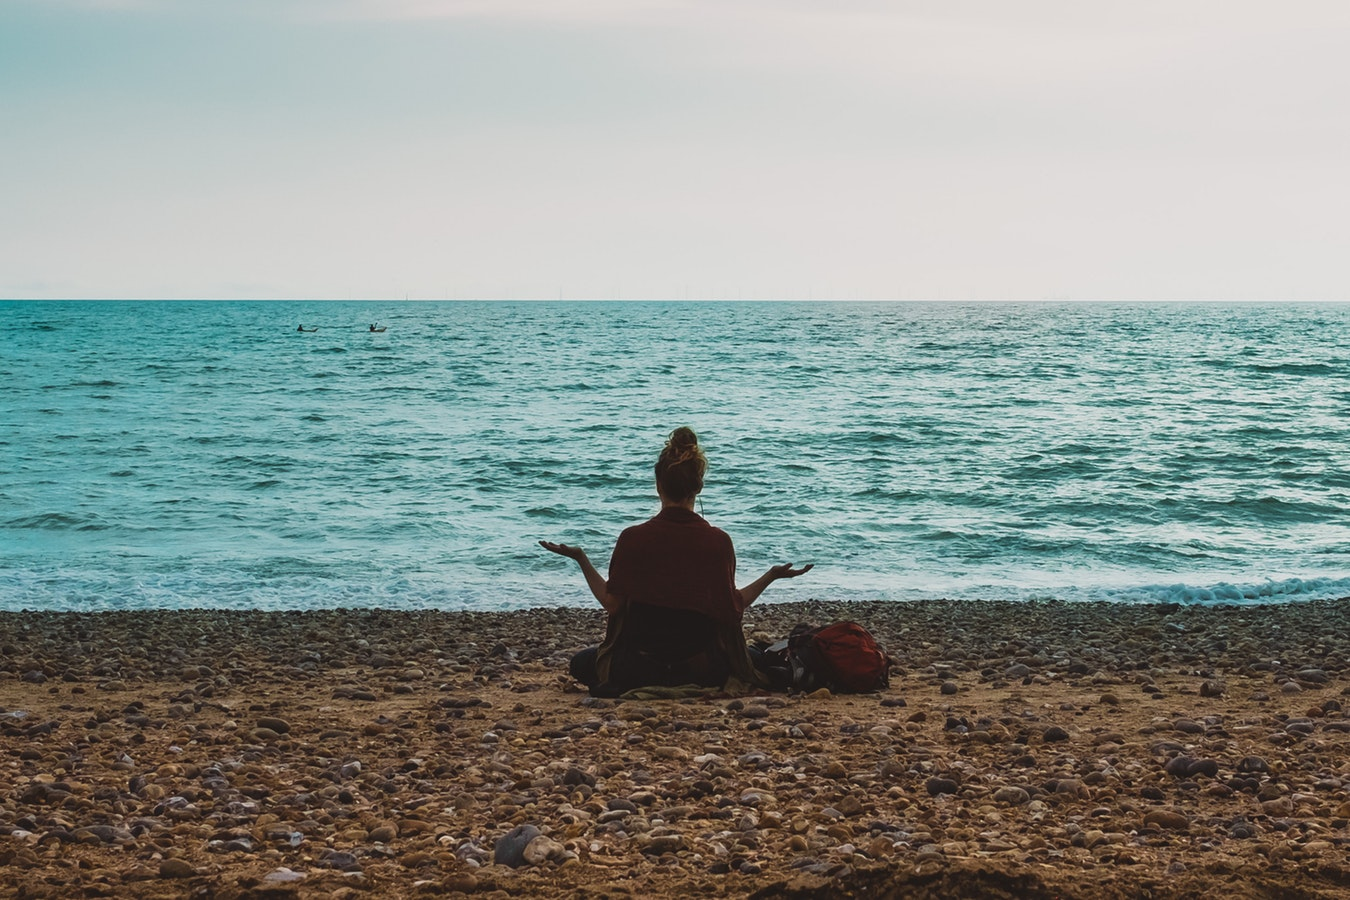 A woman sitting on the beach practicing meditation and breathing techniques